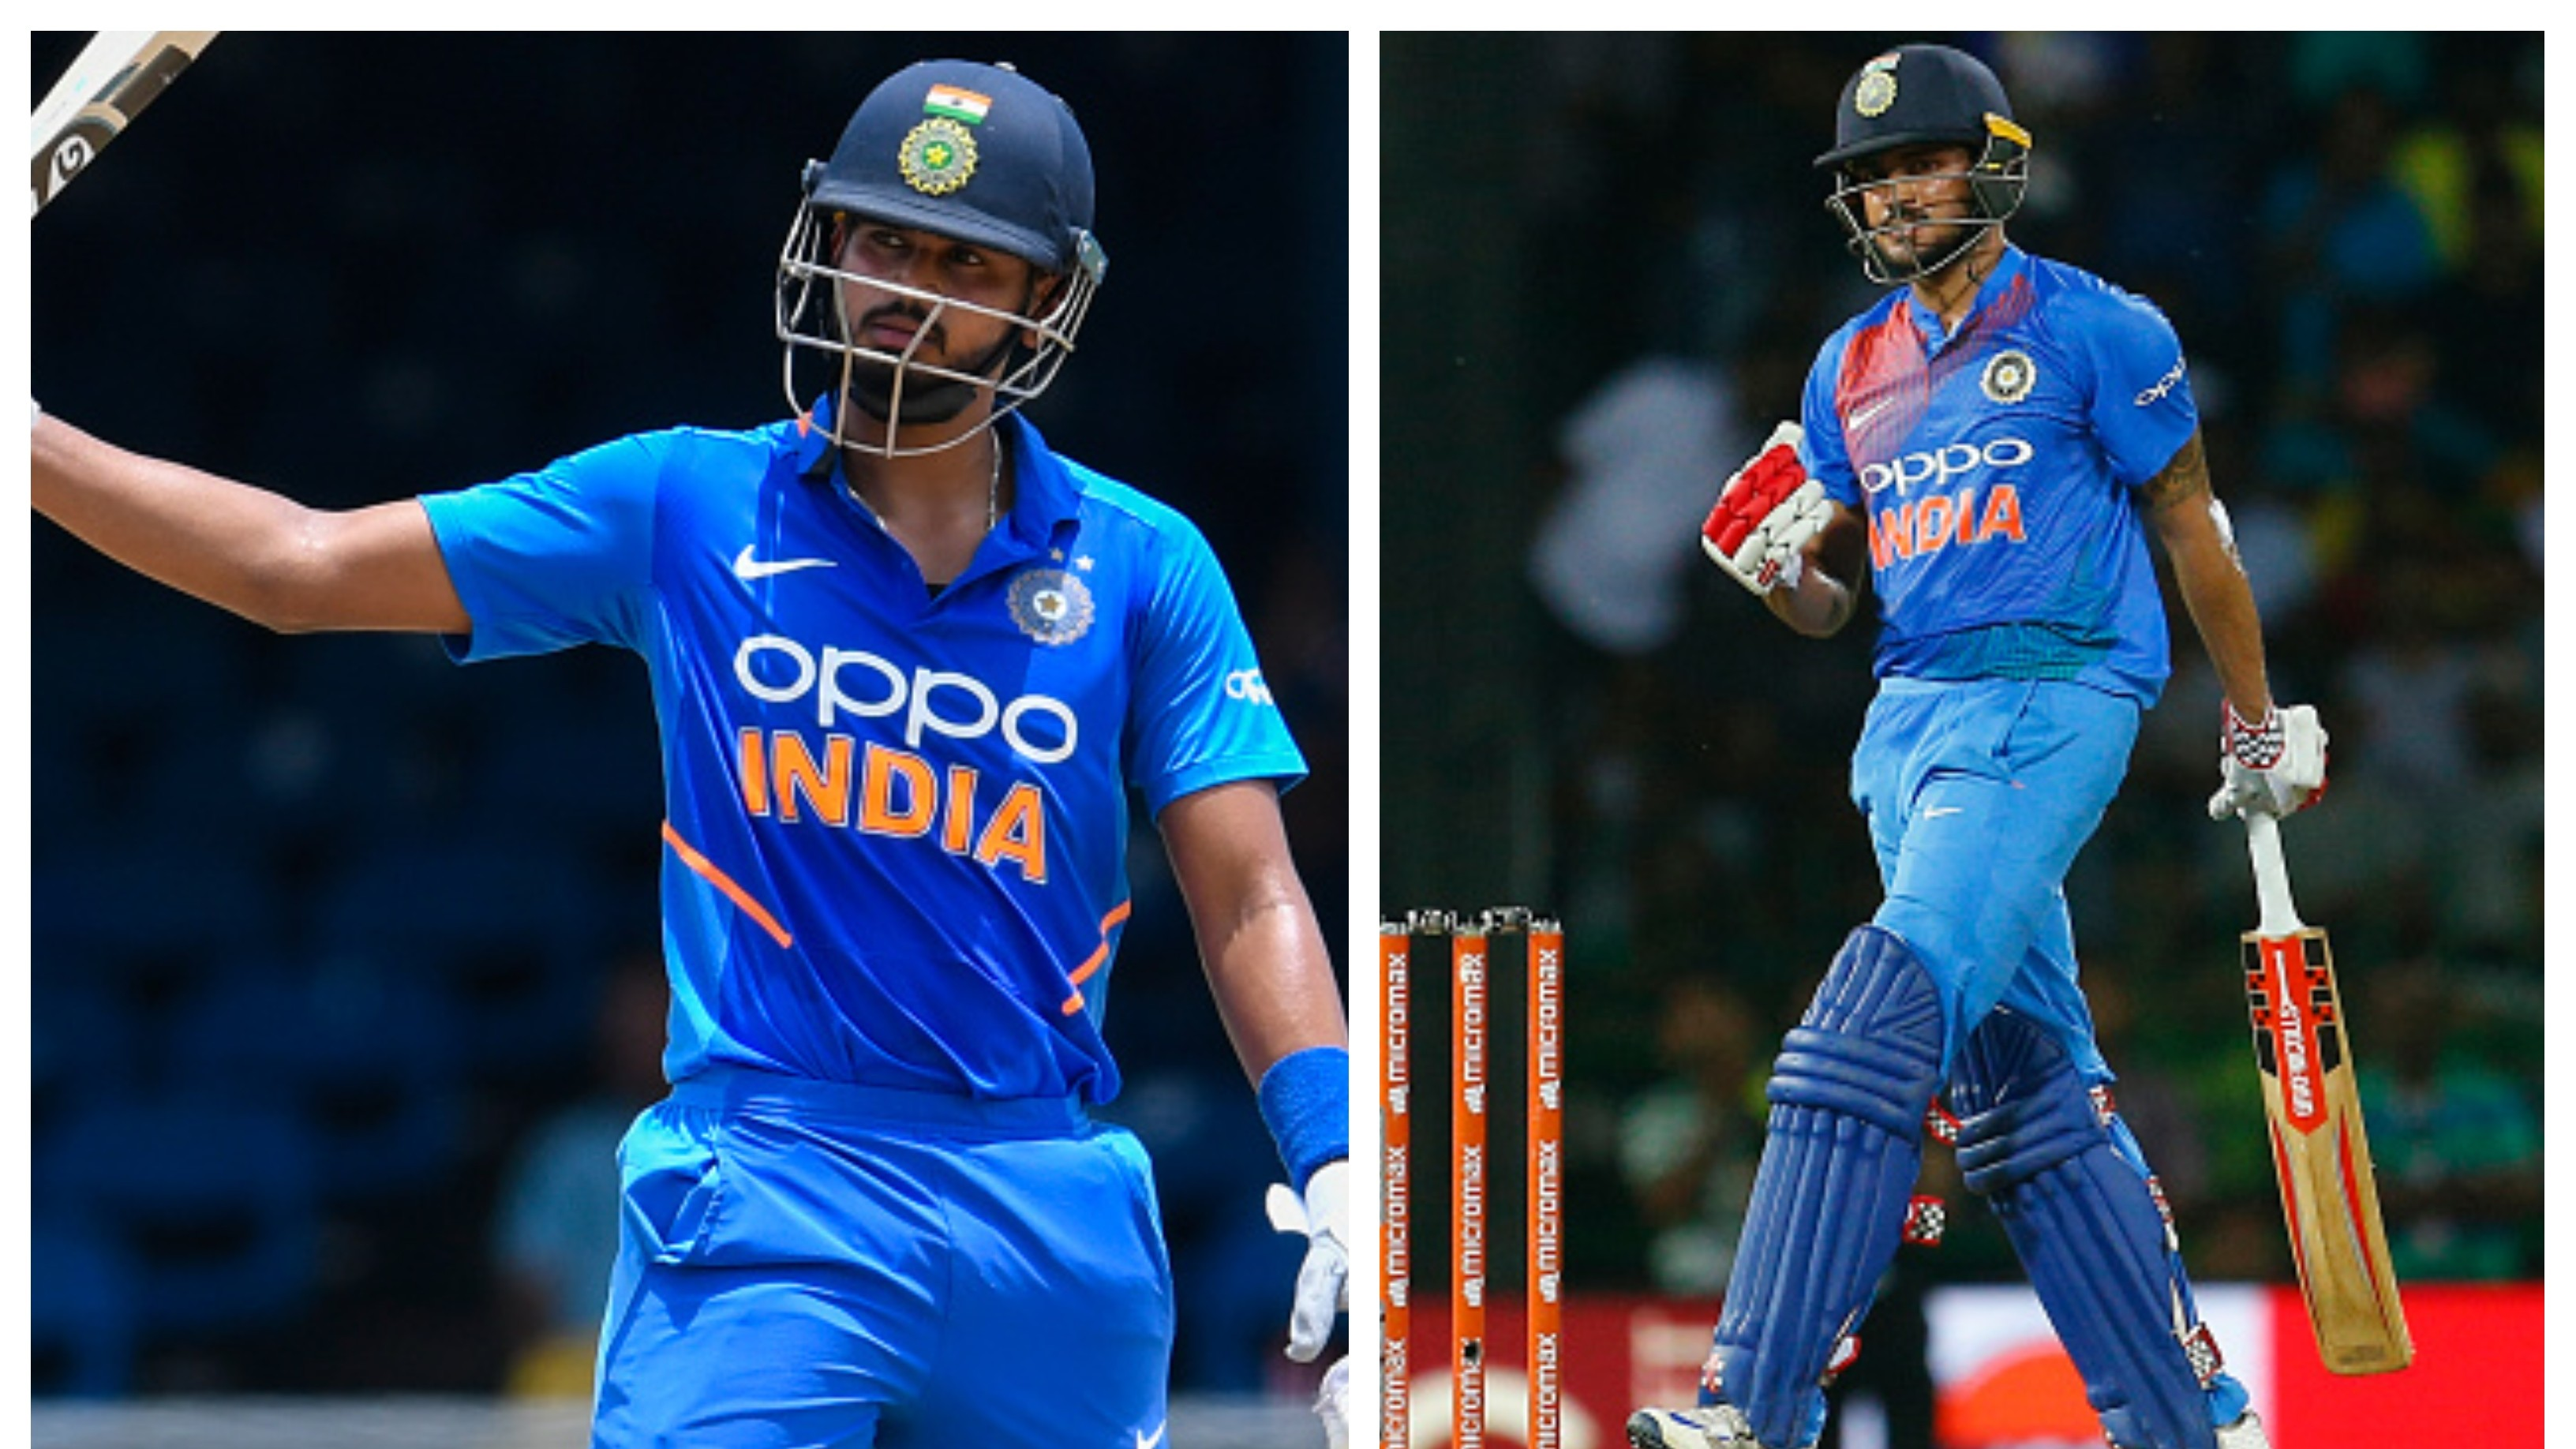 Manish Pandey, Shreyas Iyer to lead India A against South Africa A in the one-day series